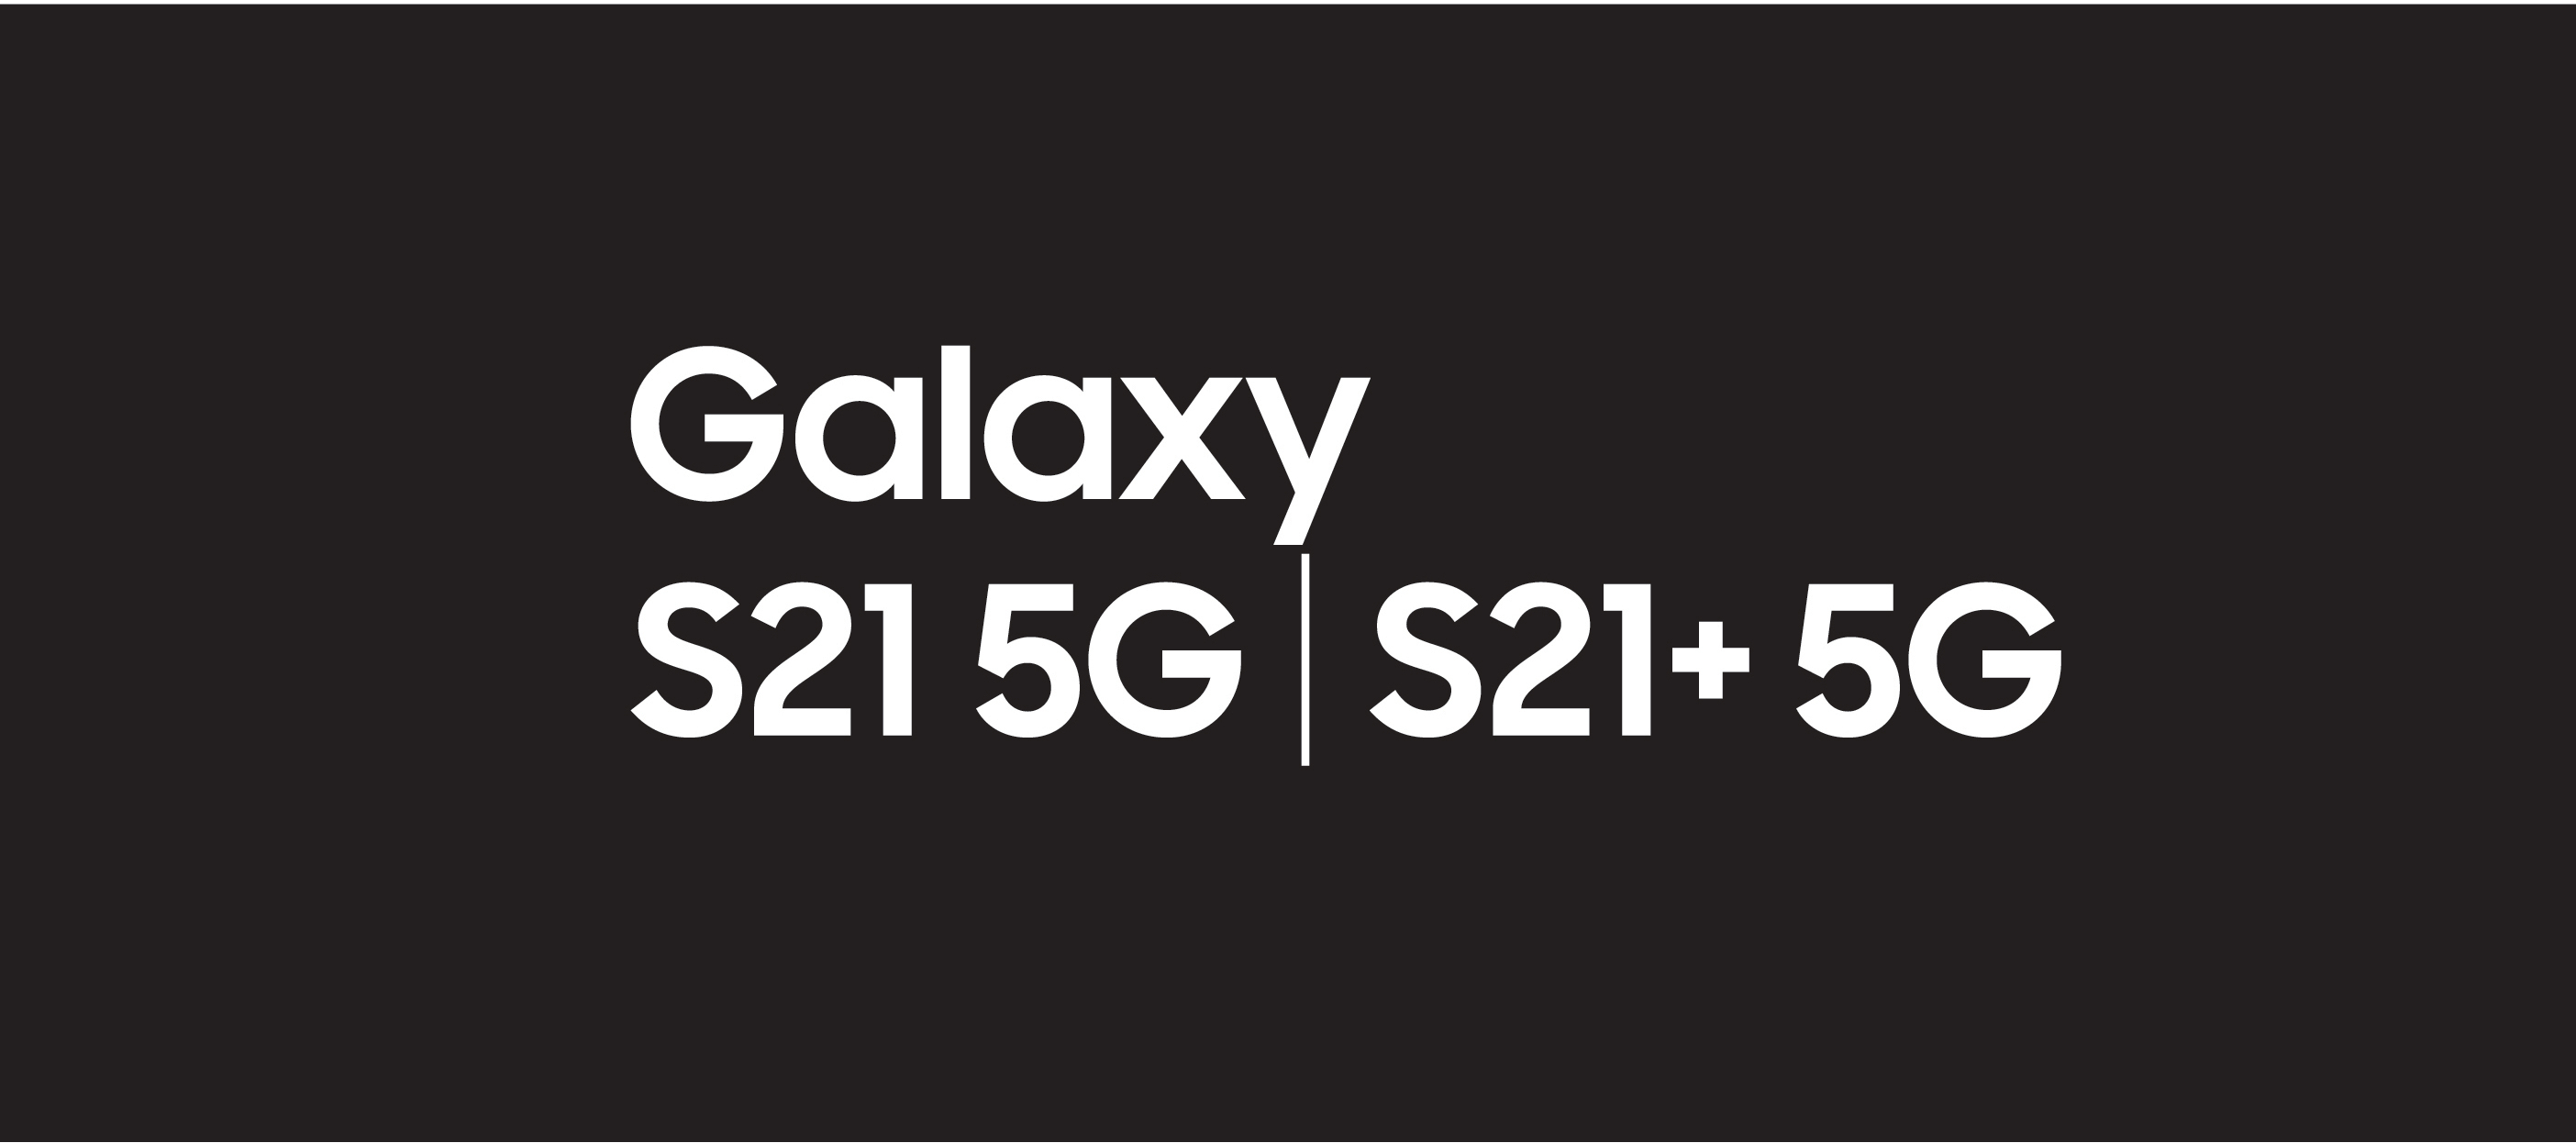 New Samsung Galaxy S21 5G is here!